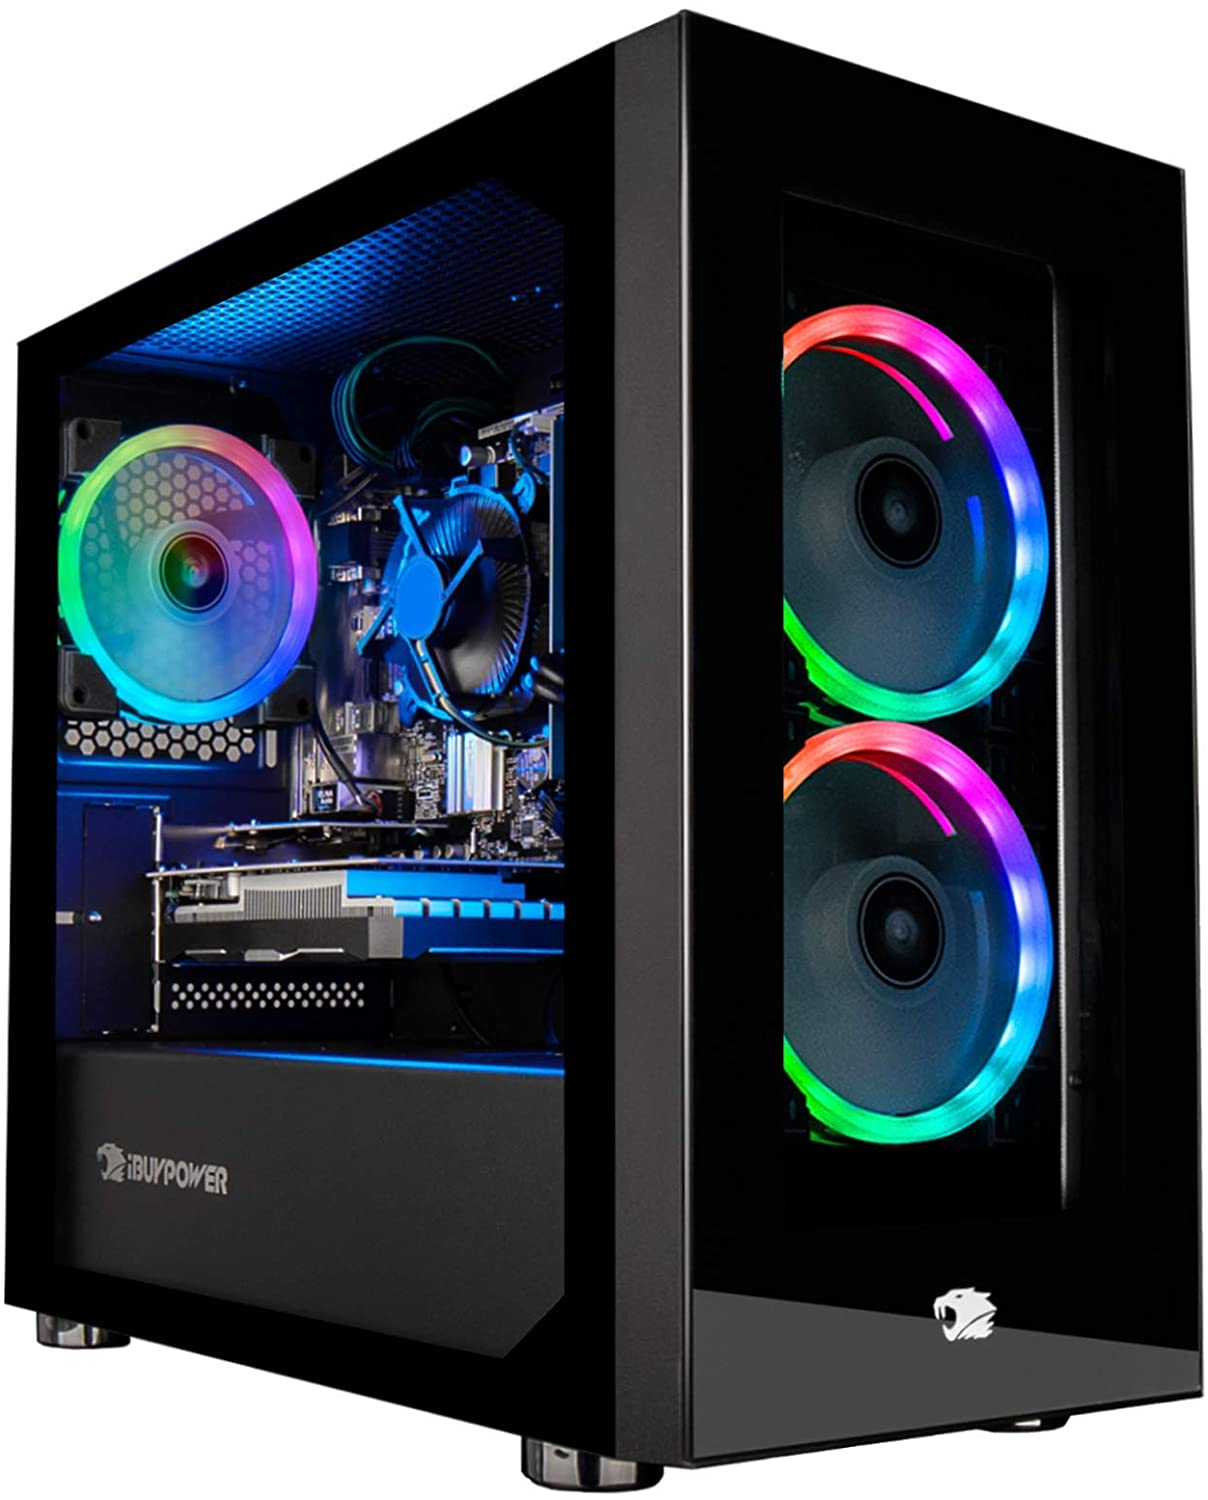 71CXtWQZ5iL. AC SL1500 Best Dedicated Streaming PC - Top 3 Best PCs Built for Streaming